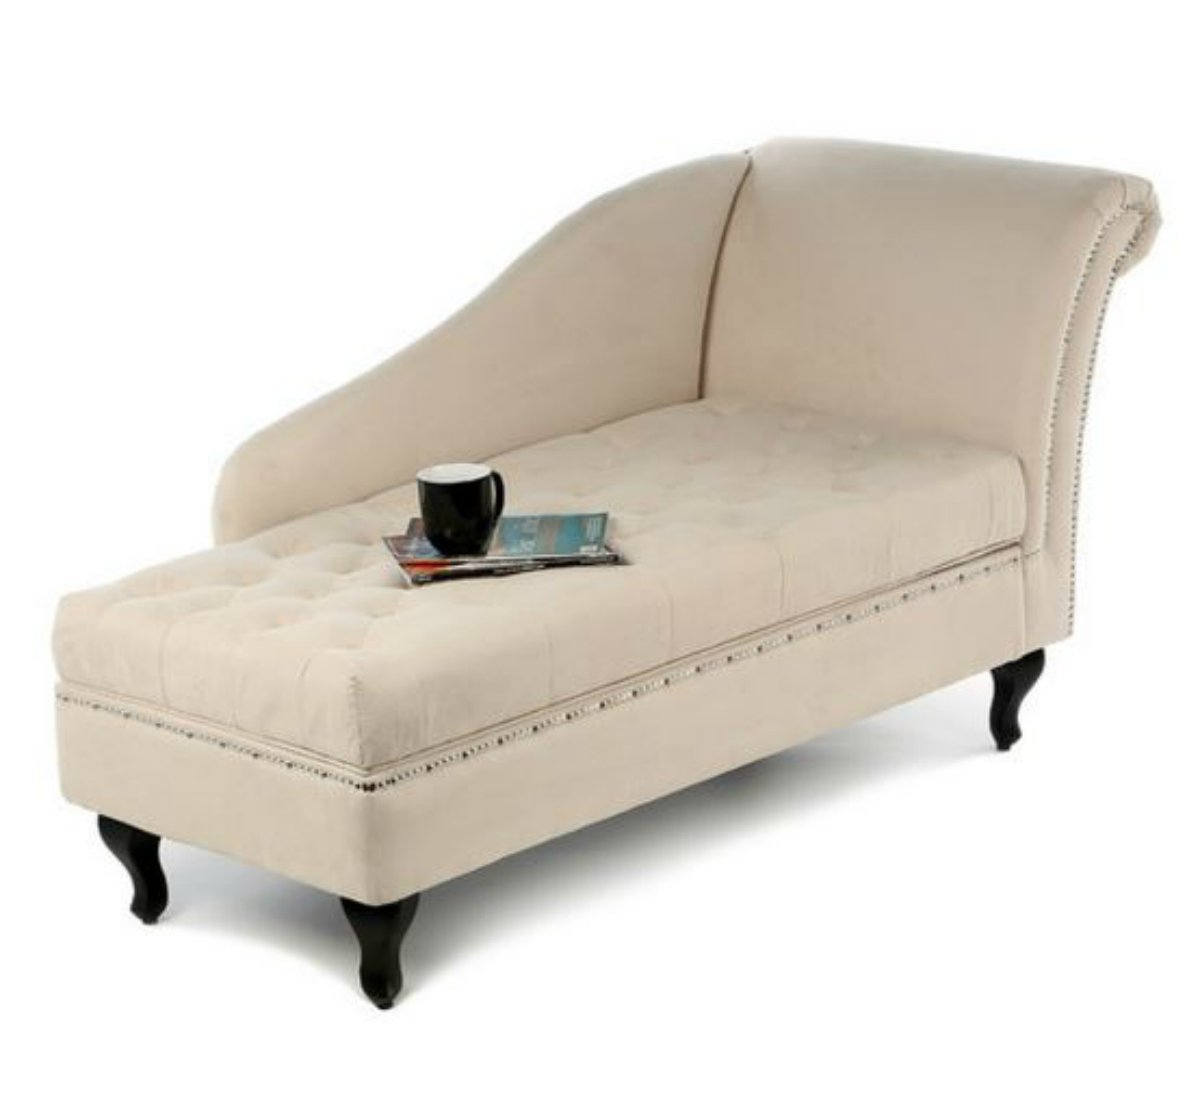 Traditional Storage Chaise Lounge - This Luxurious Lounger w/ Tufted Cushions is a Great Addition to Your Office, Living Room, or Bedroom -Made of Wood and Microsuede - Free eBook (Khaki) 8